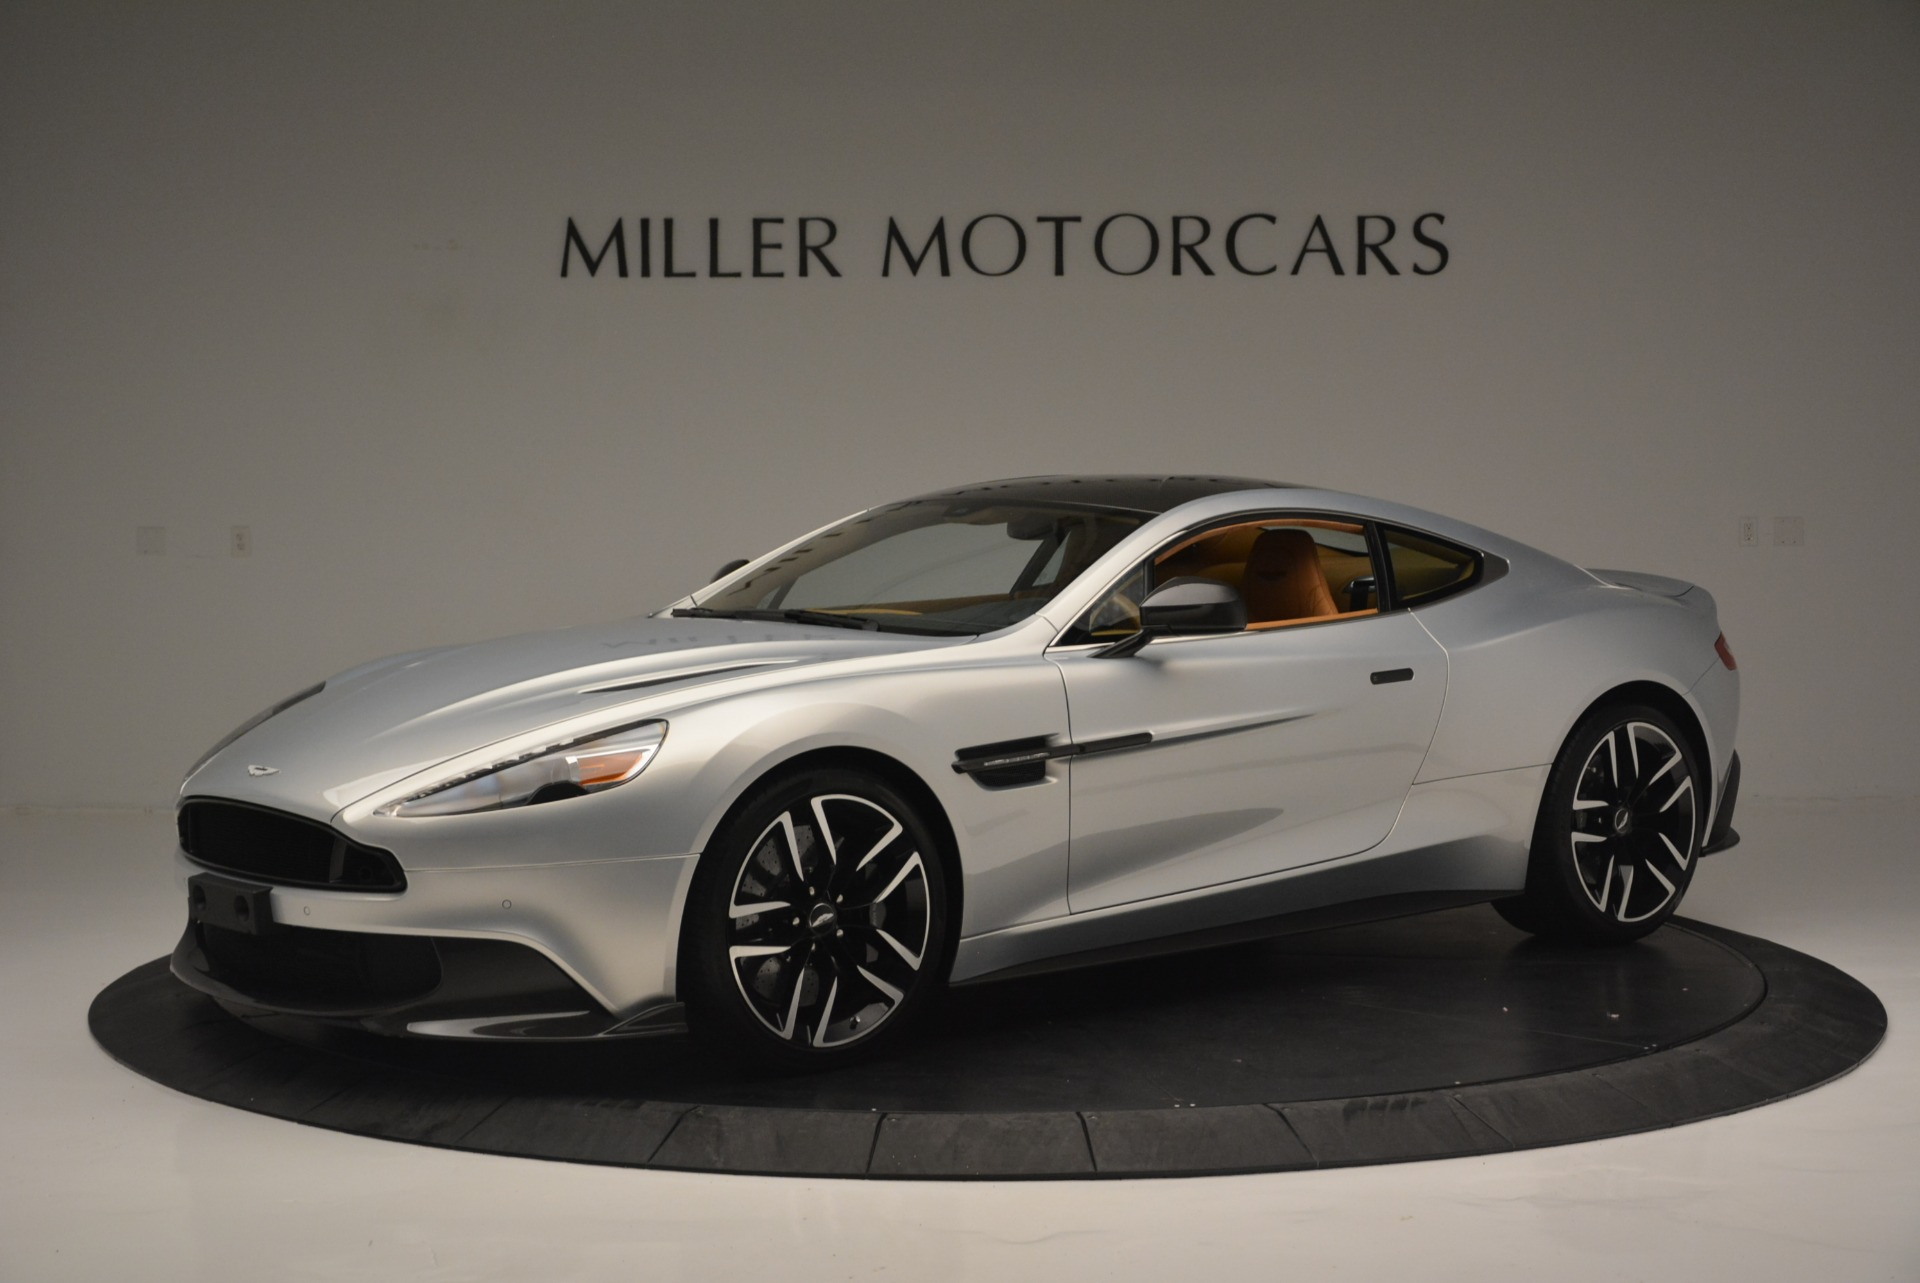 Used 2018 Aston Martin Vanquish S Coupe for sale Sold at Maserati of Greenwich in Greenwich CT 06830 1